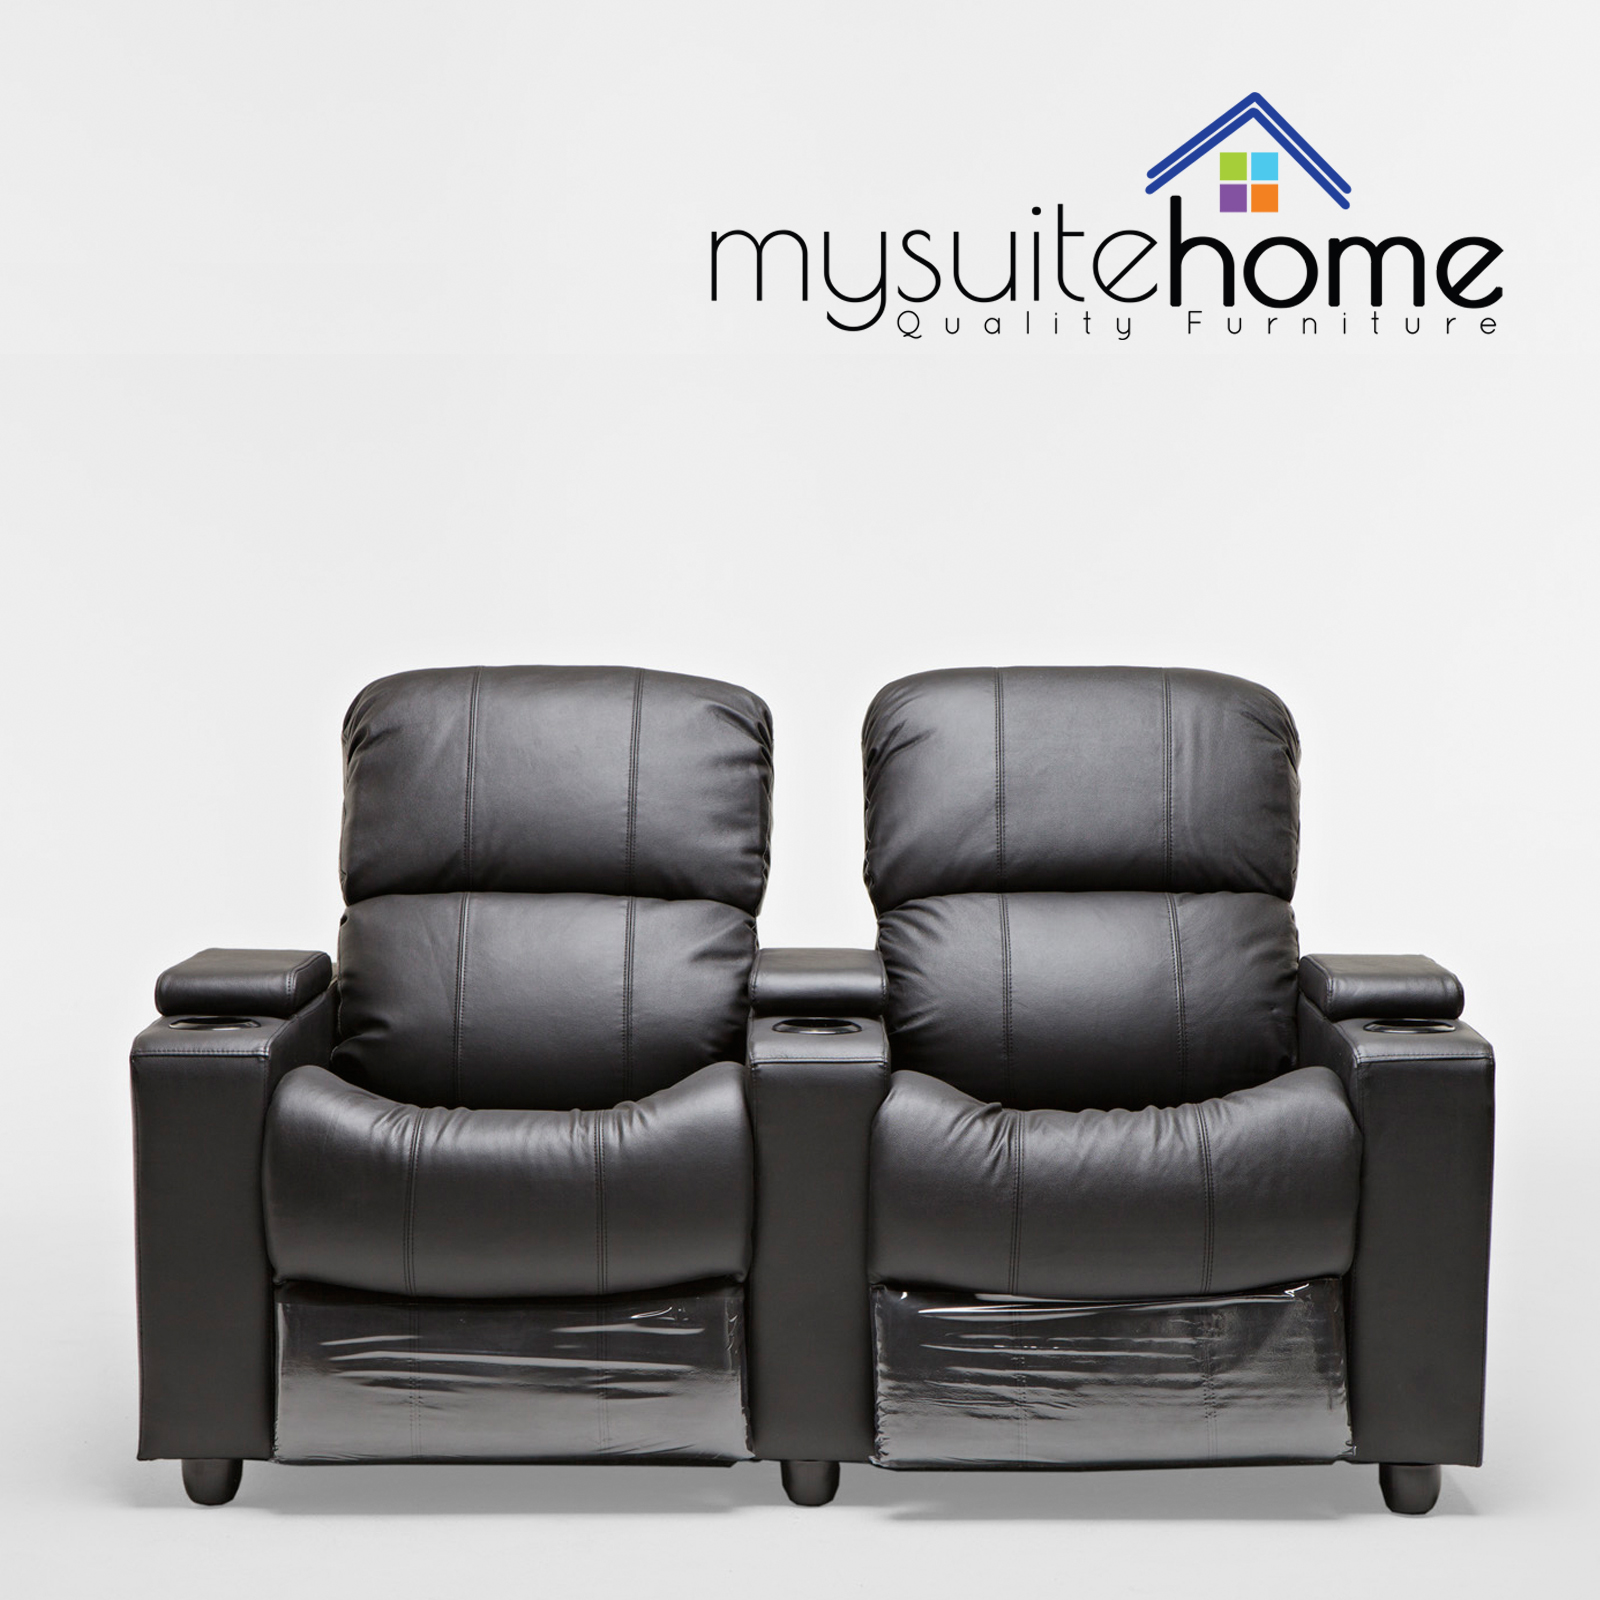 Best Leather Reclining Sofa Brands: Sophie Leather 2 Seater Home Theatre Recliner Sofa Lounge